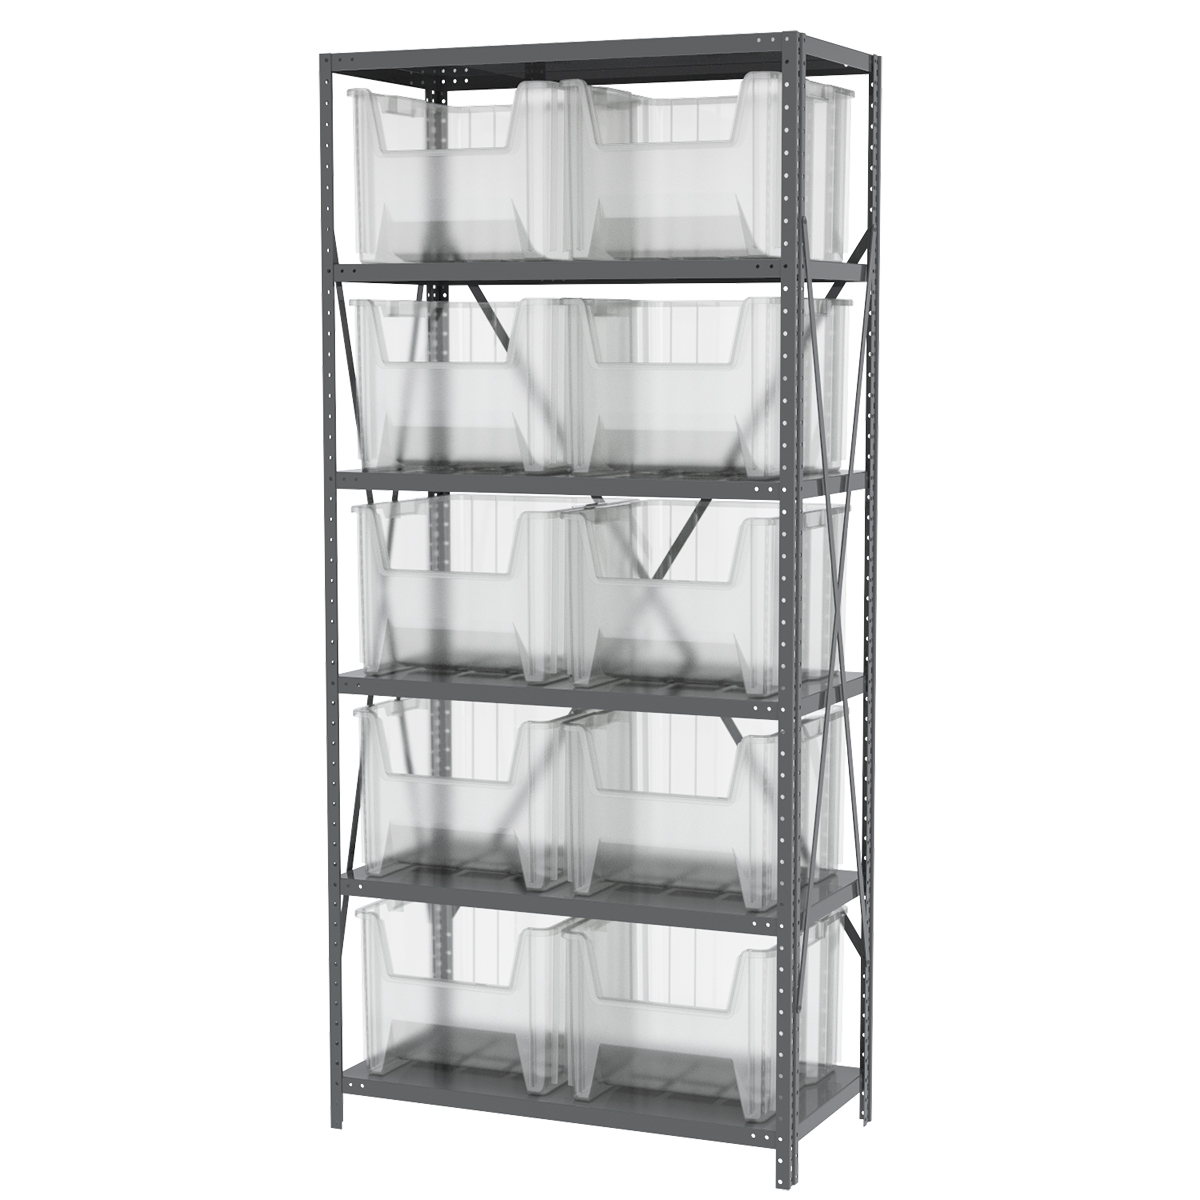 Steel Shelving Kit, 18x36x79, 10 Bins, Gray/Clear.  This item sold in carton quantities of 1.